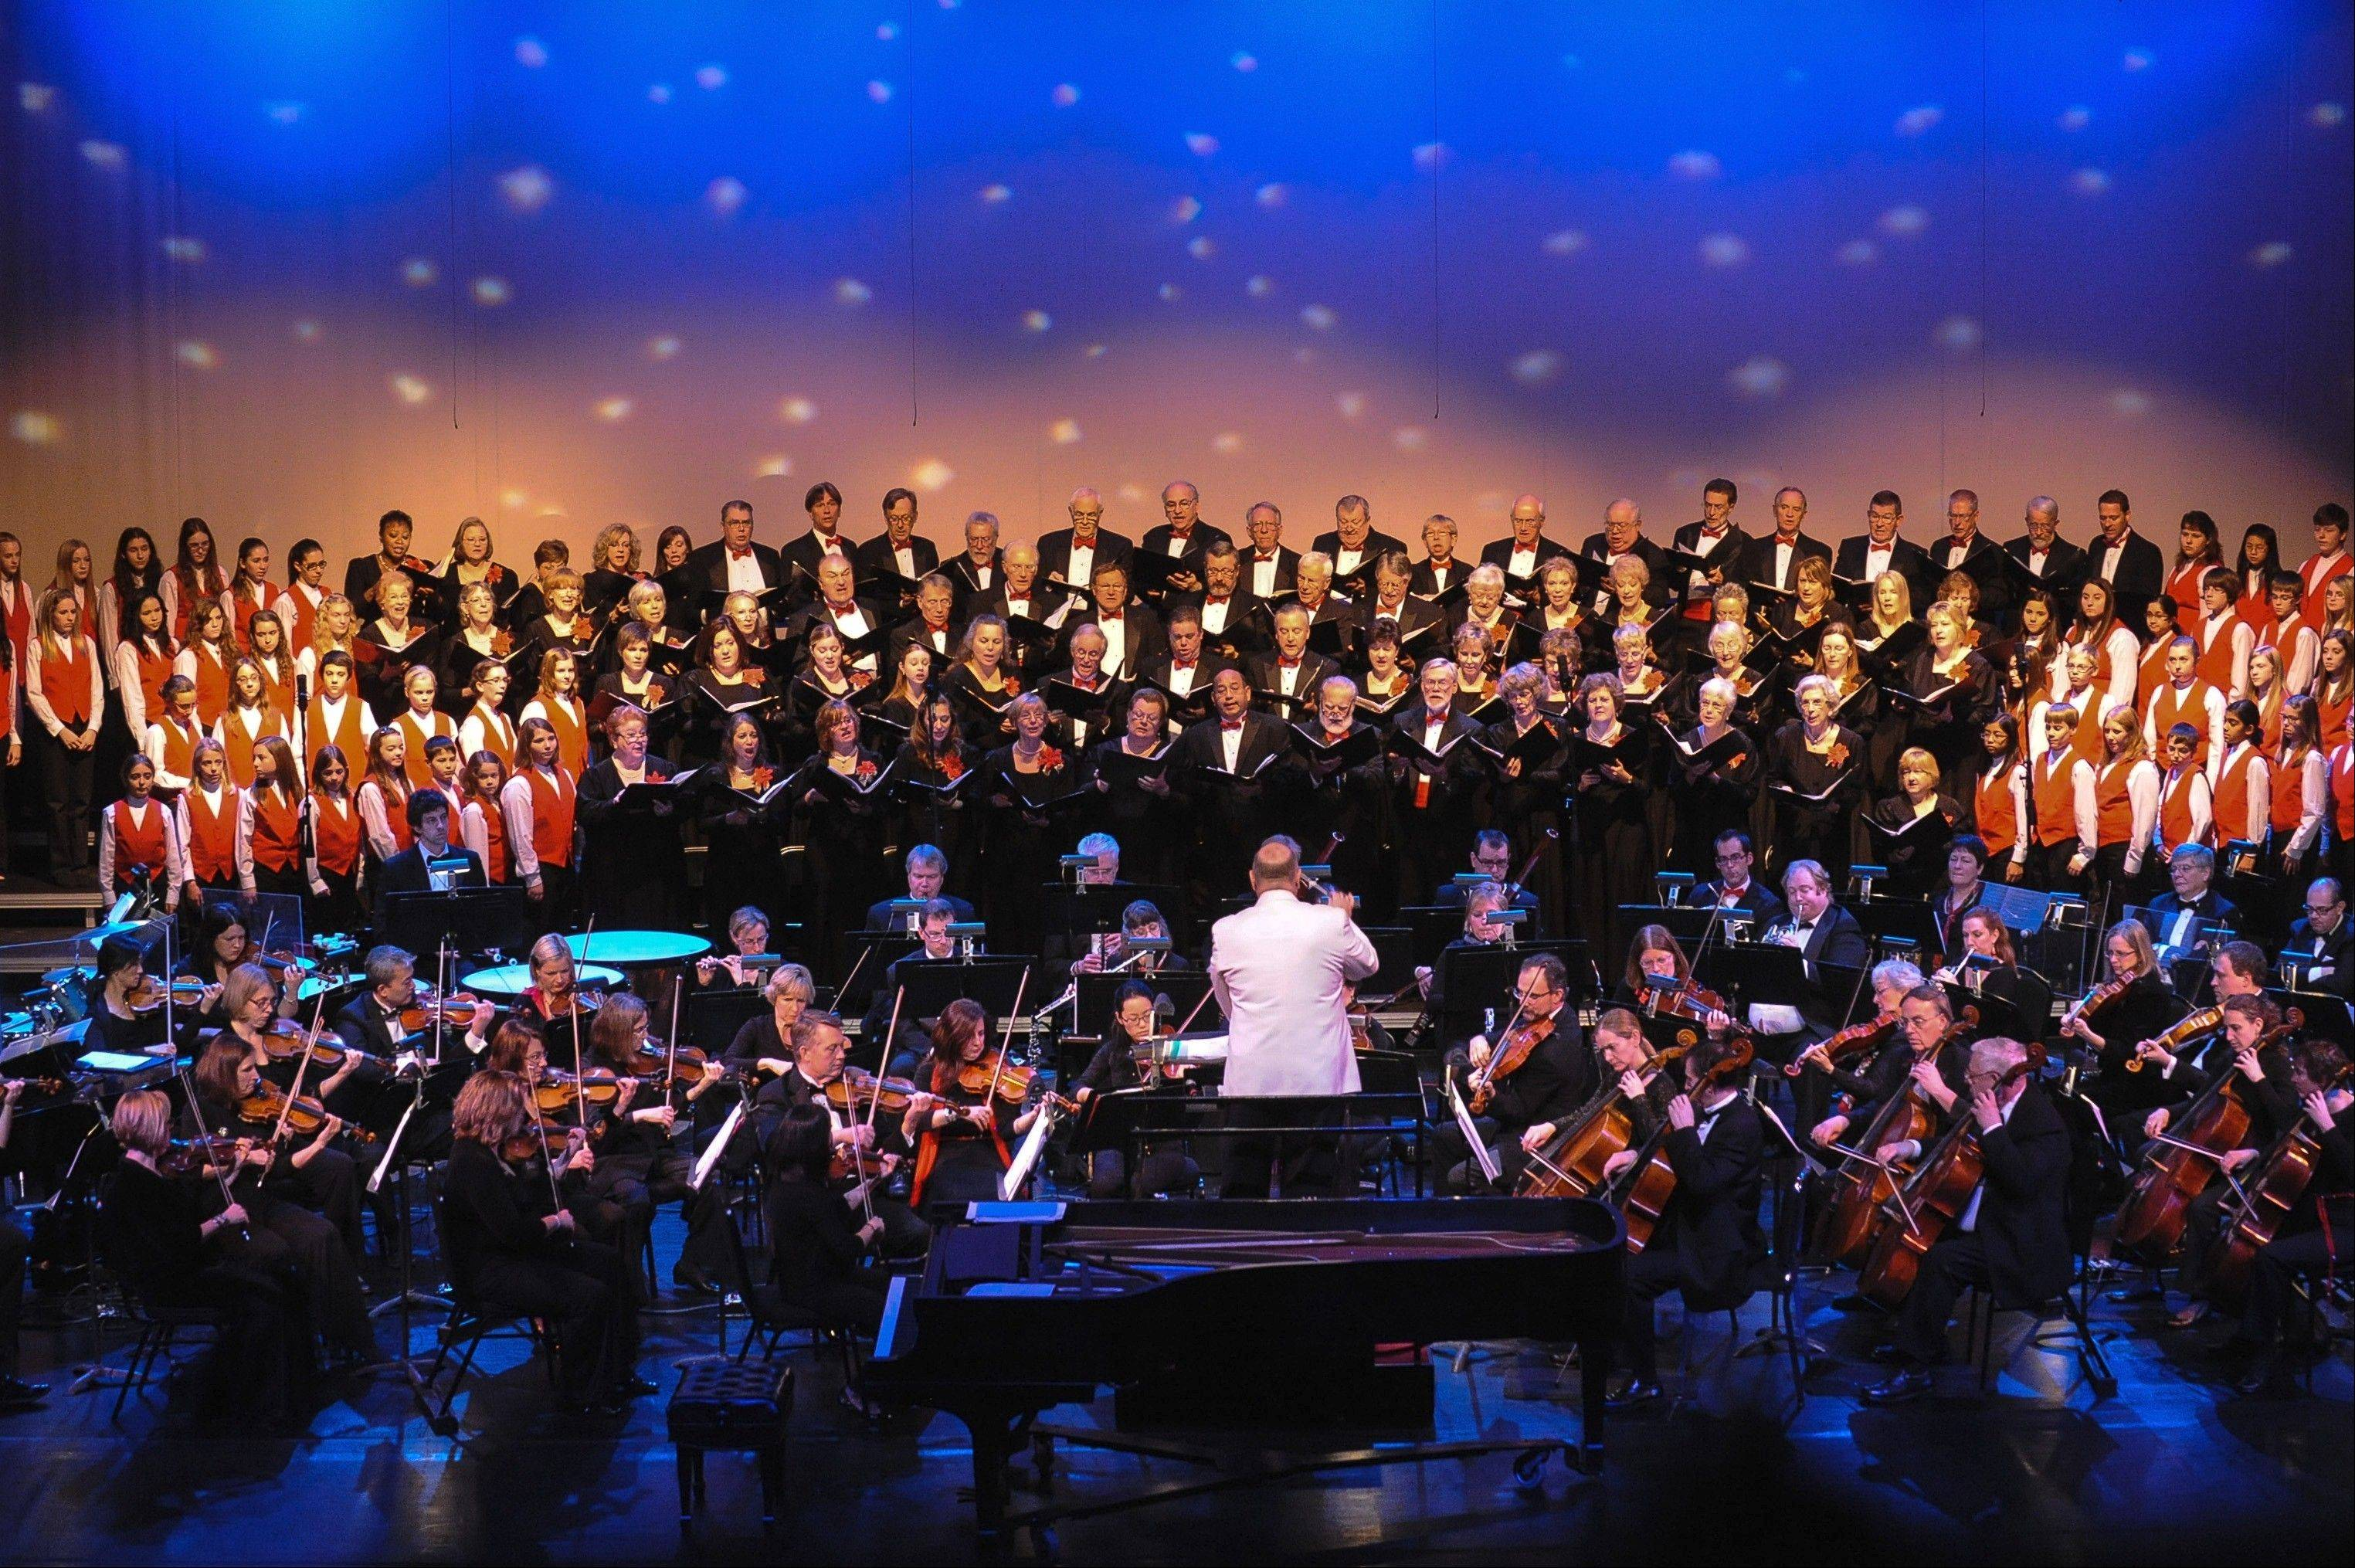 The Elgin Choral Union and the Elgin Children's Chorus team up with the Elgin Symphony Orchestra for a holiday concert.